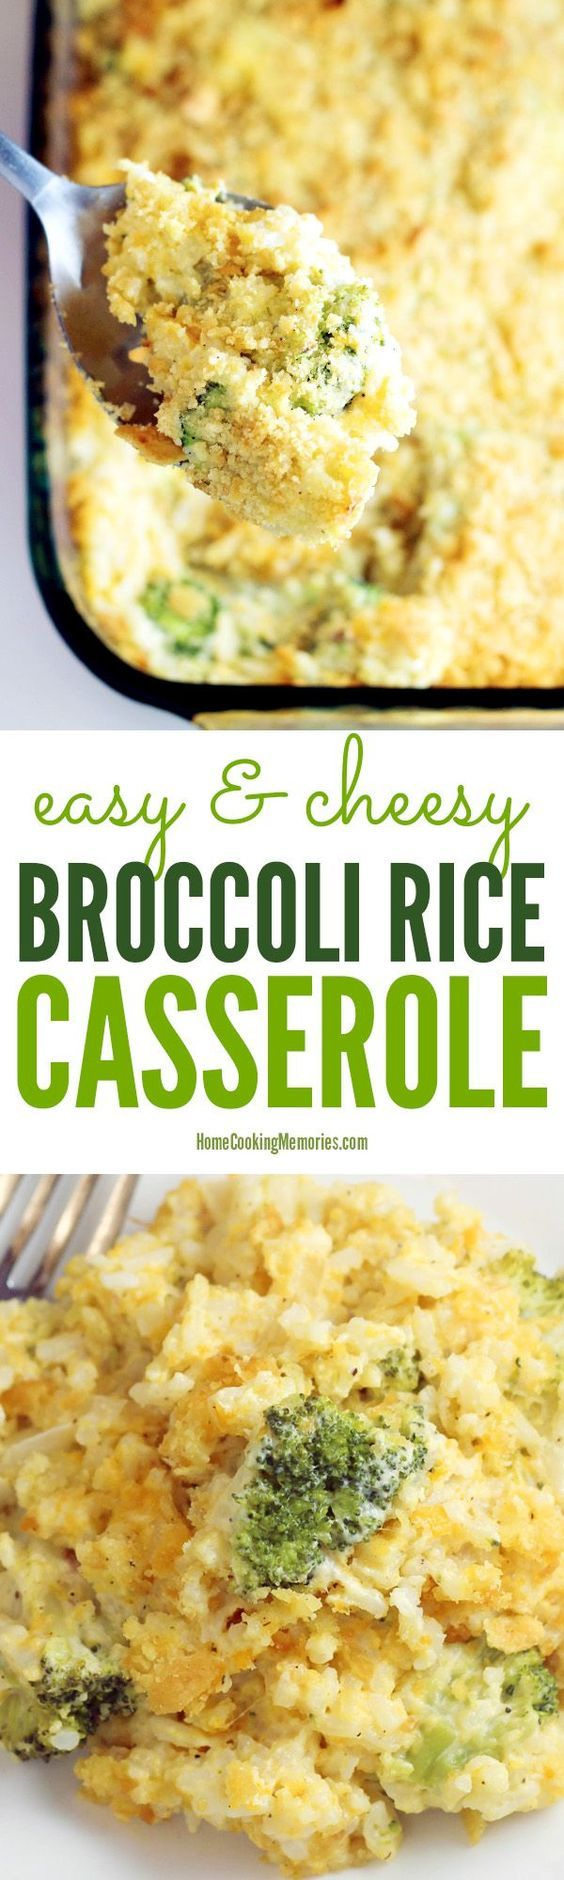 Easy & Cheesy Broccoli Rice Casserole recipe - this side dish recipe is filling, great for potlucks, & total comfort food. Everyone loves the cheesy, chicken cracker topping! Add chicken for a main dish.